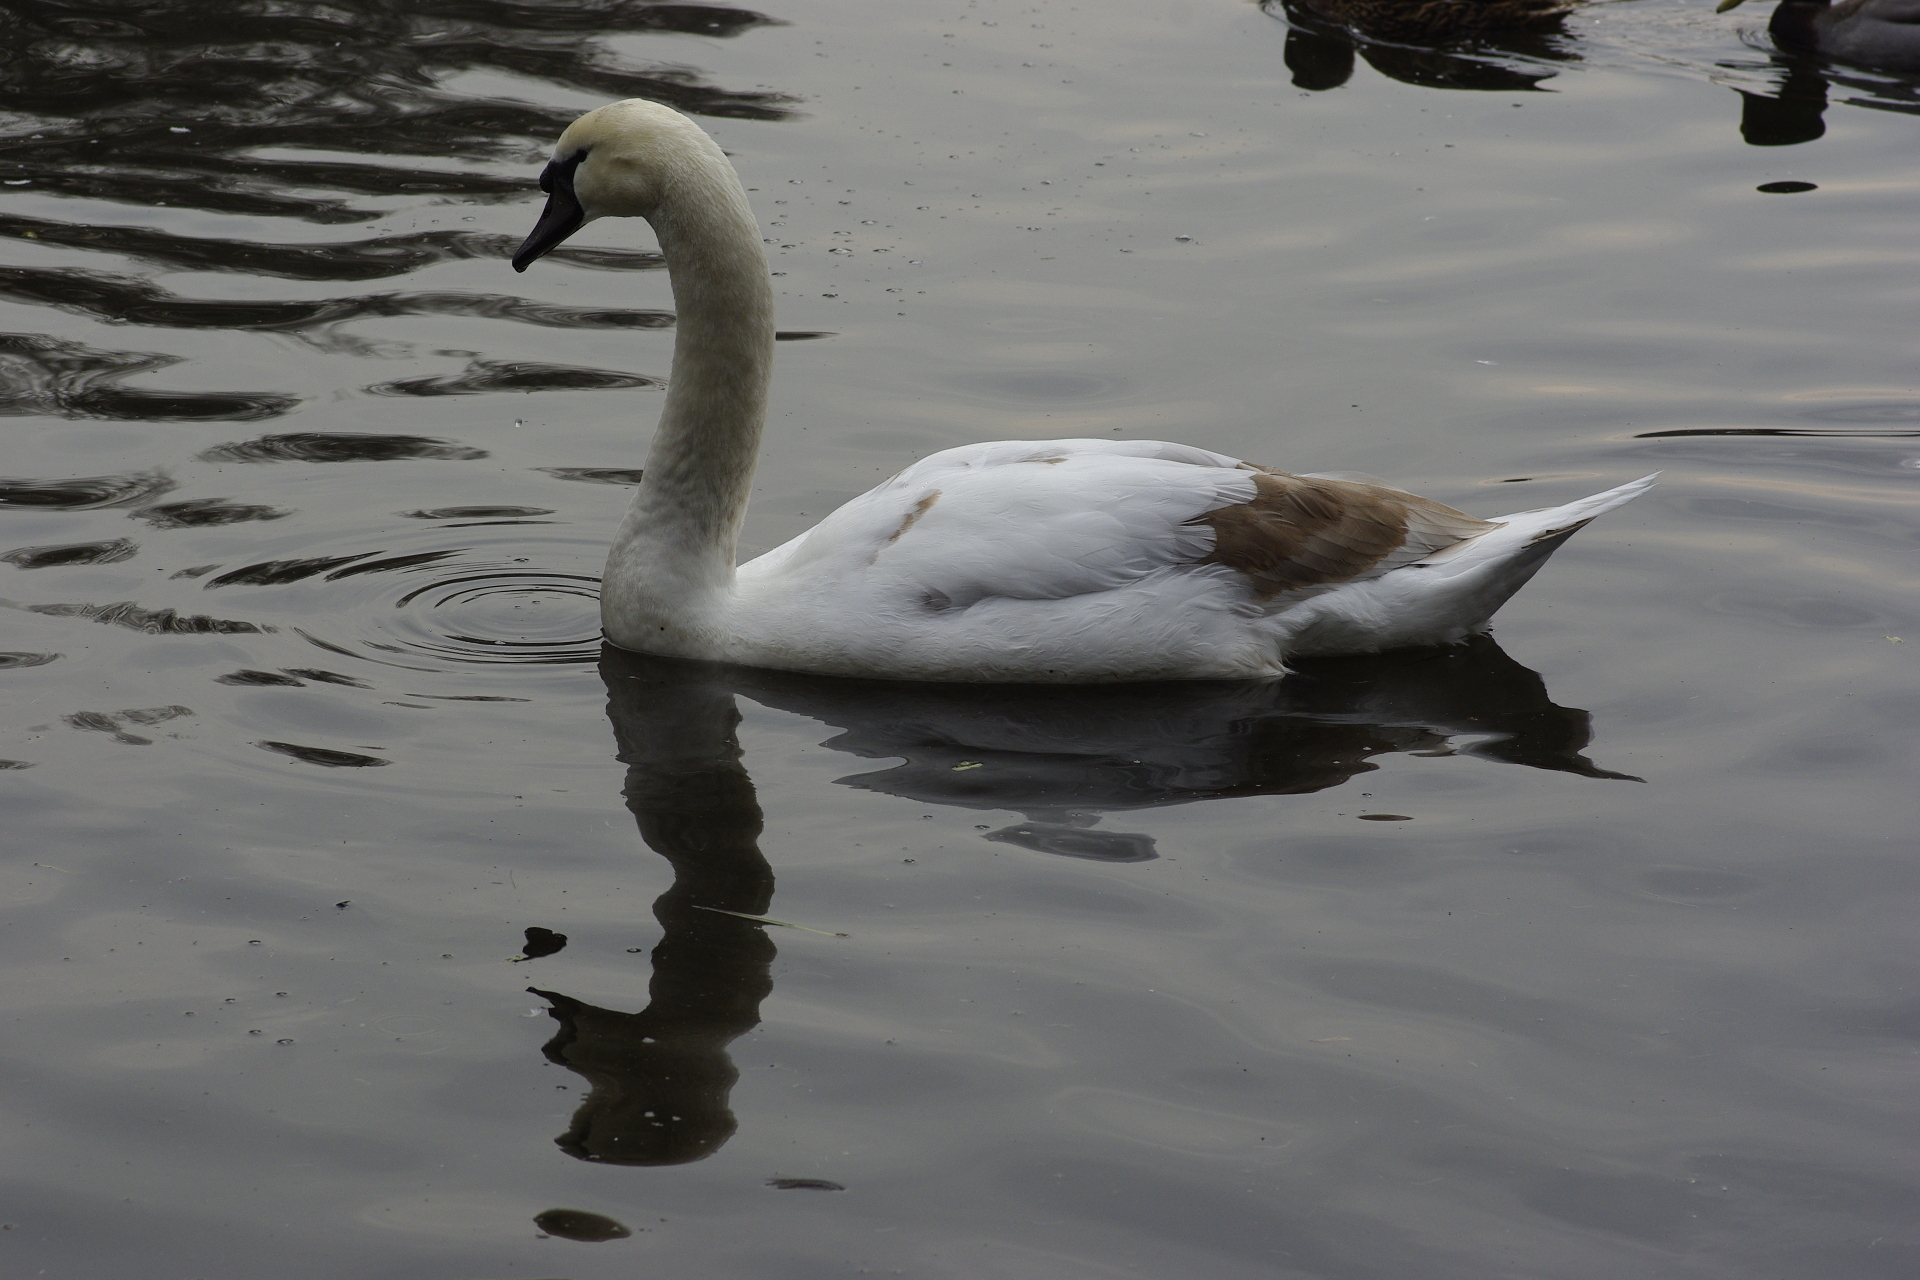 Swan on Wollaton Park Lake